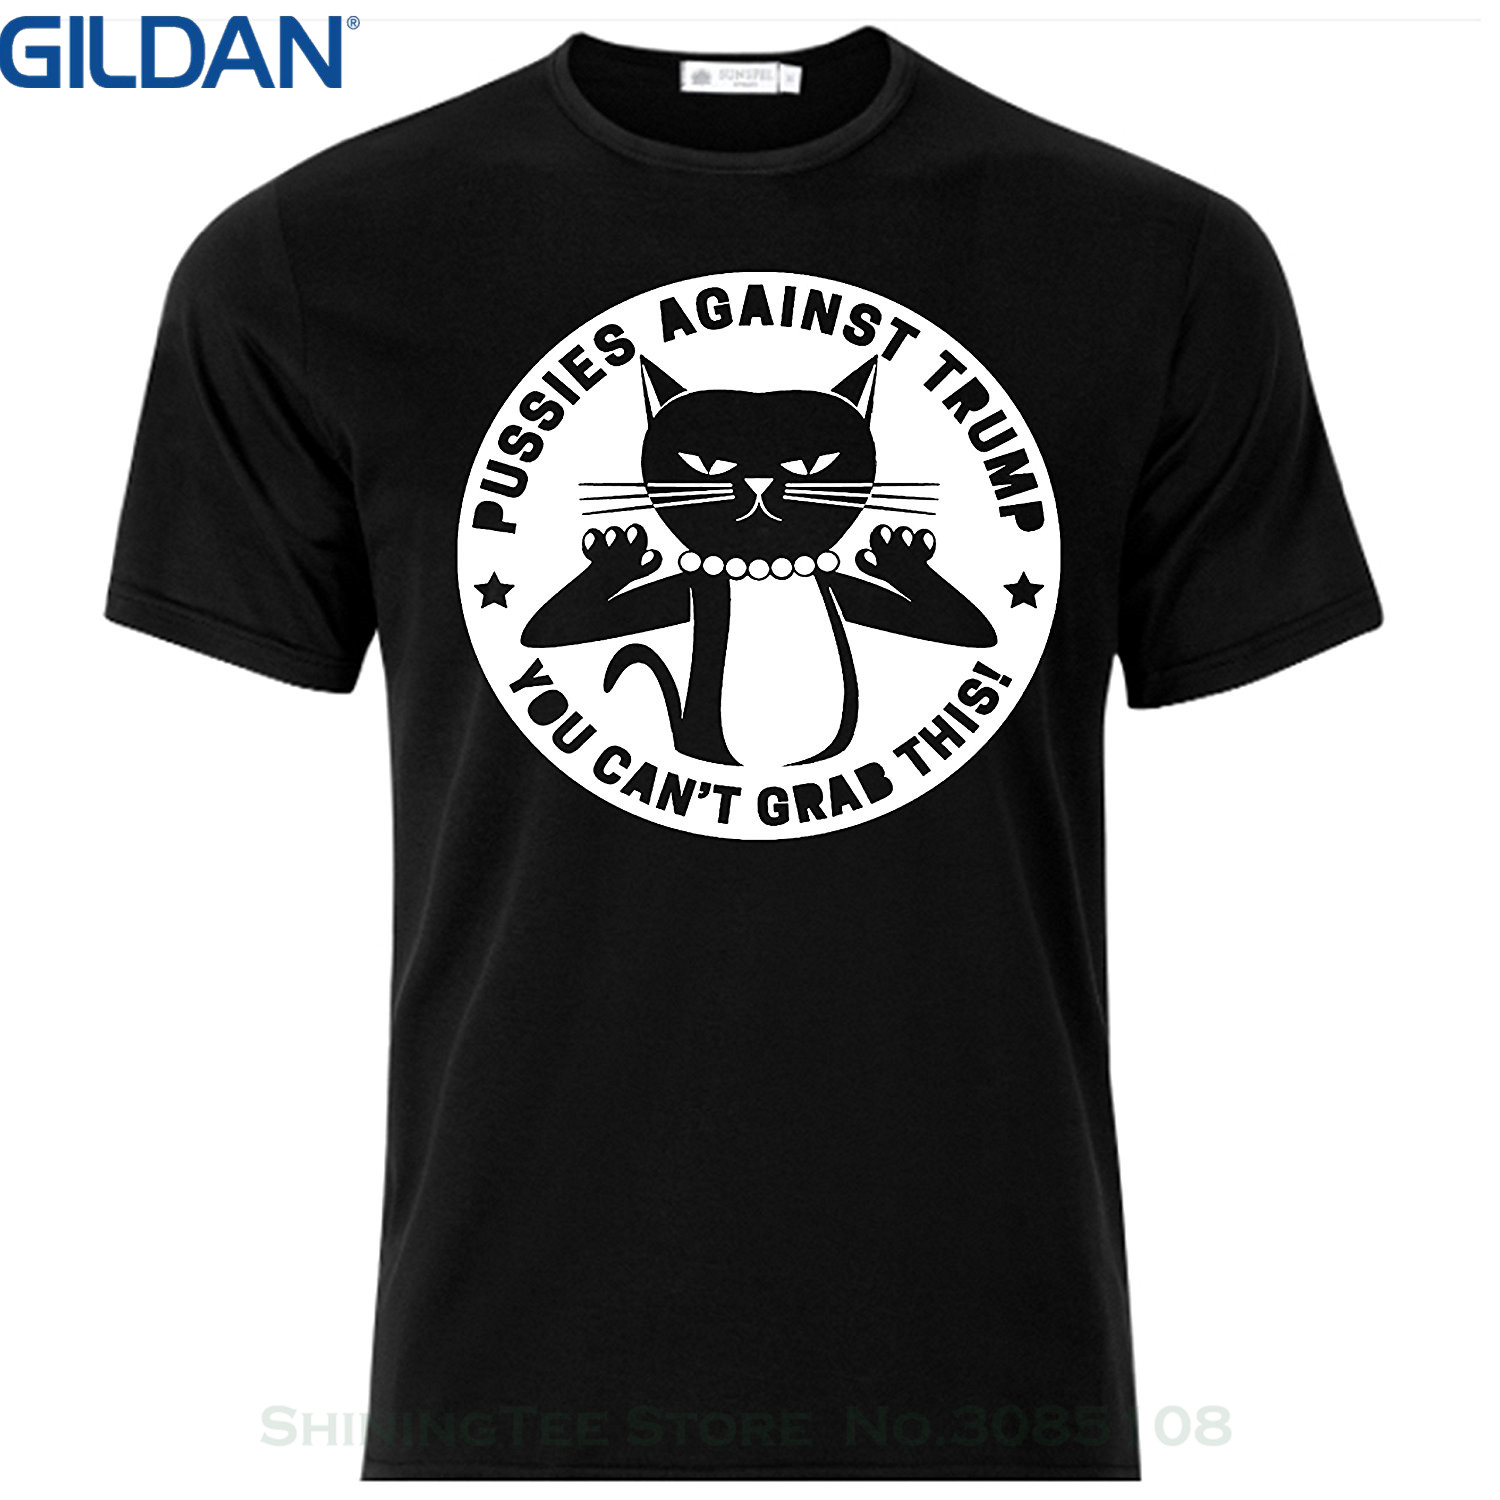 GILDAN Print Tee Shirt Men Short Sleeve Pussies Against Trump Super Mma Shop T Shirt Color Black